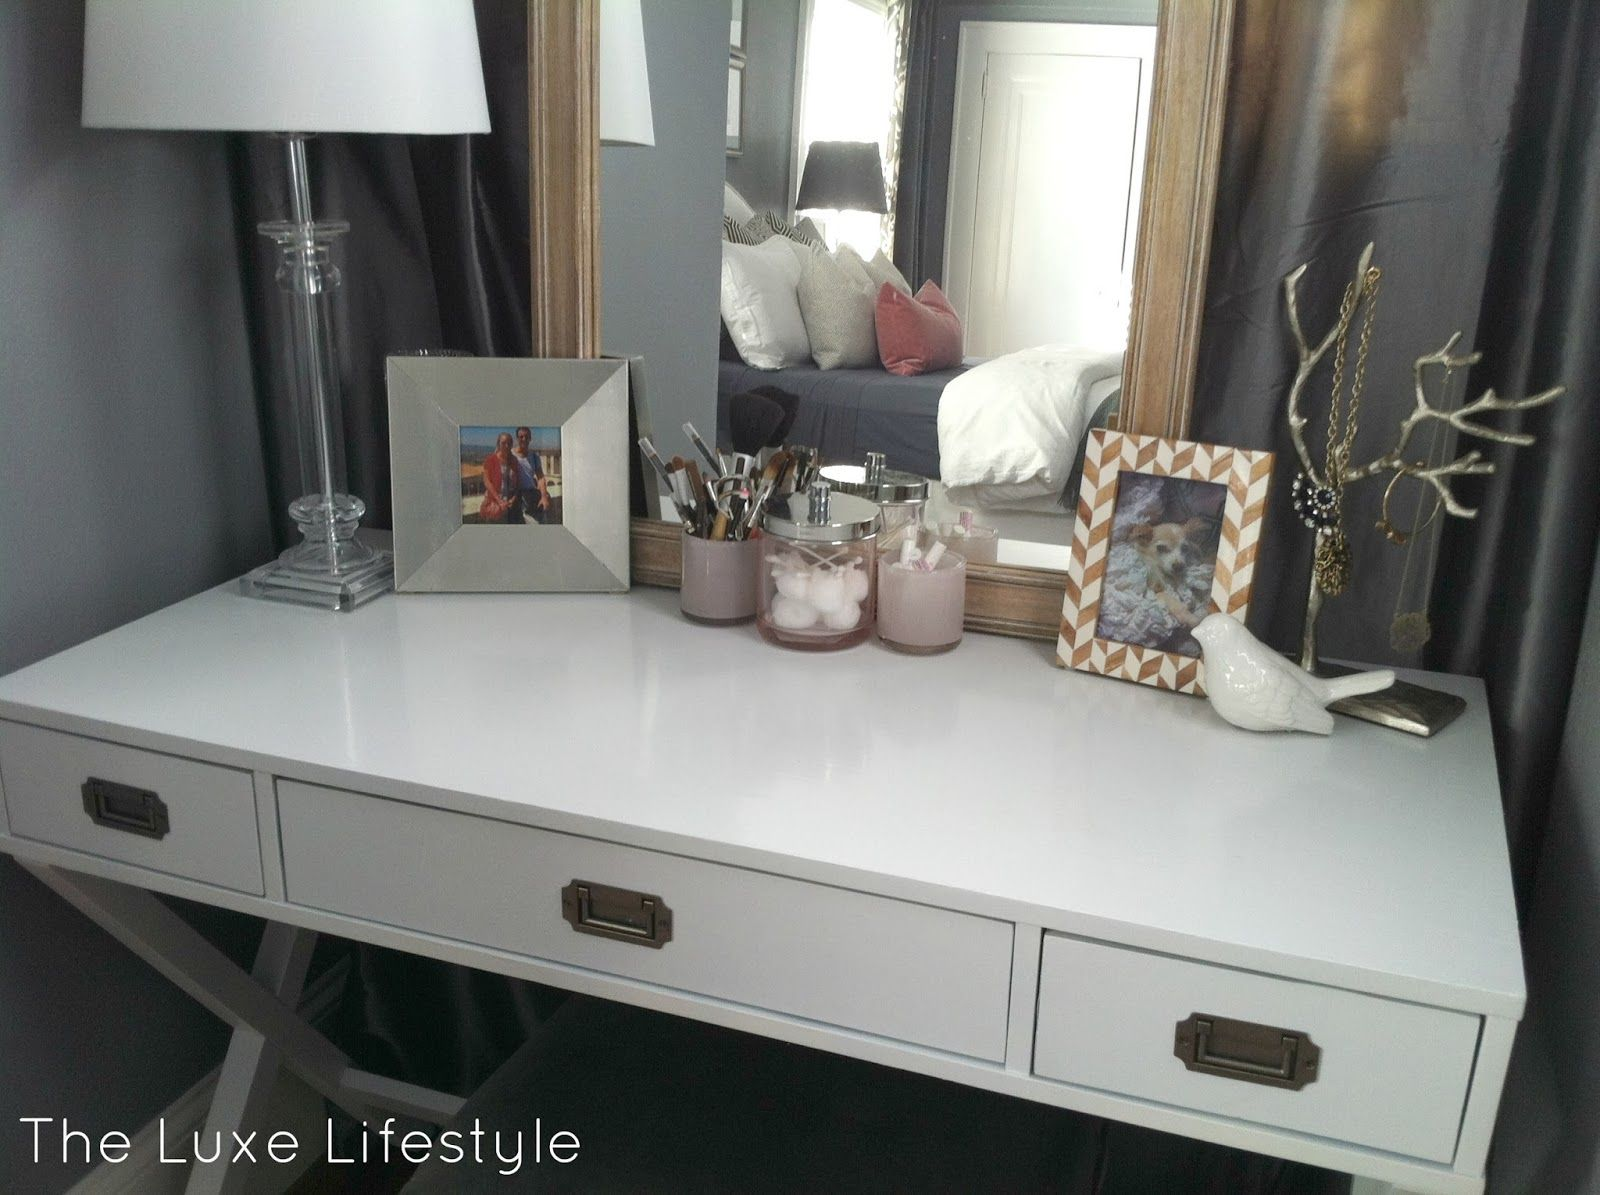 Luxe Lifestyle - Target Campaign Desk 134 Painted